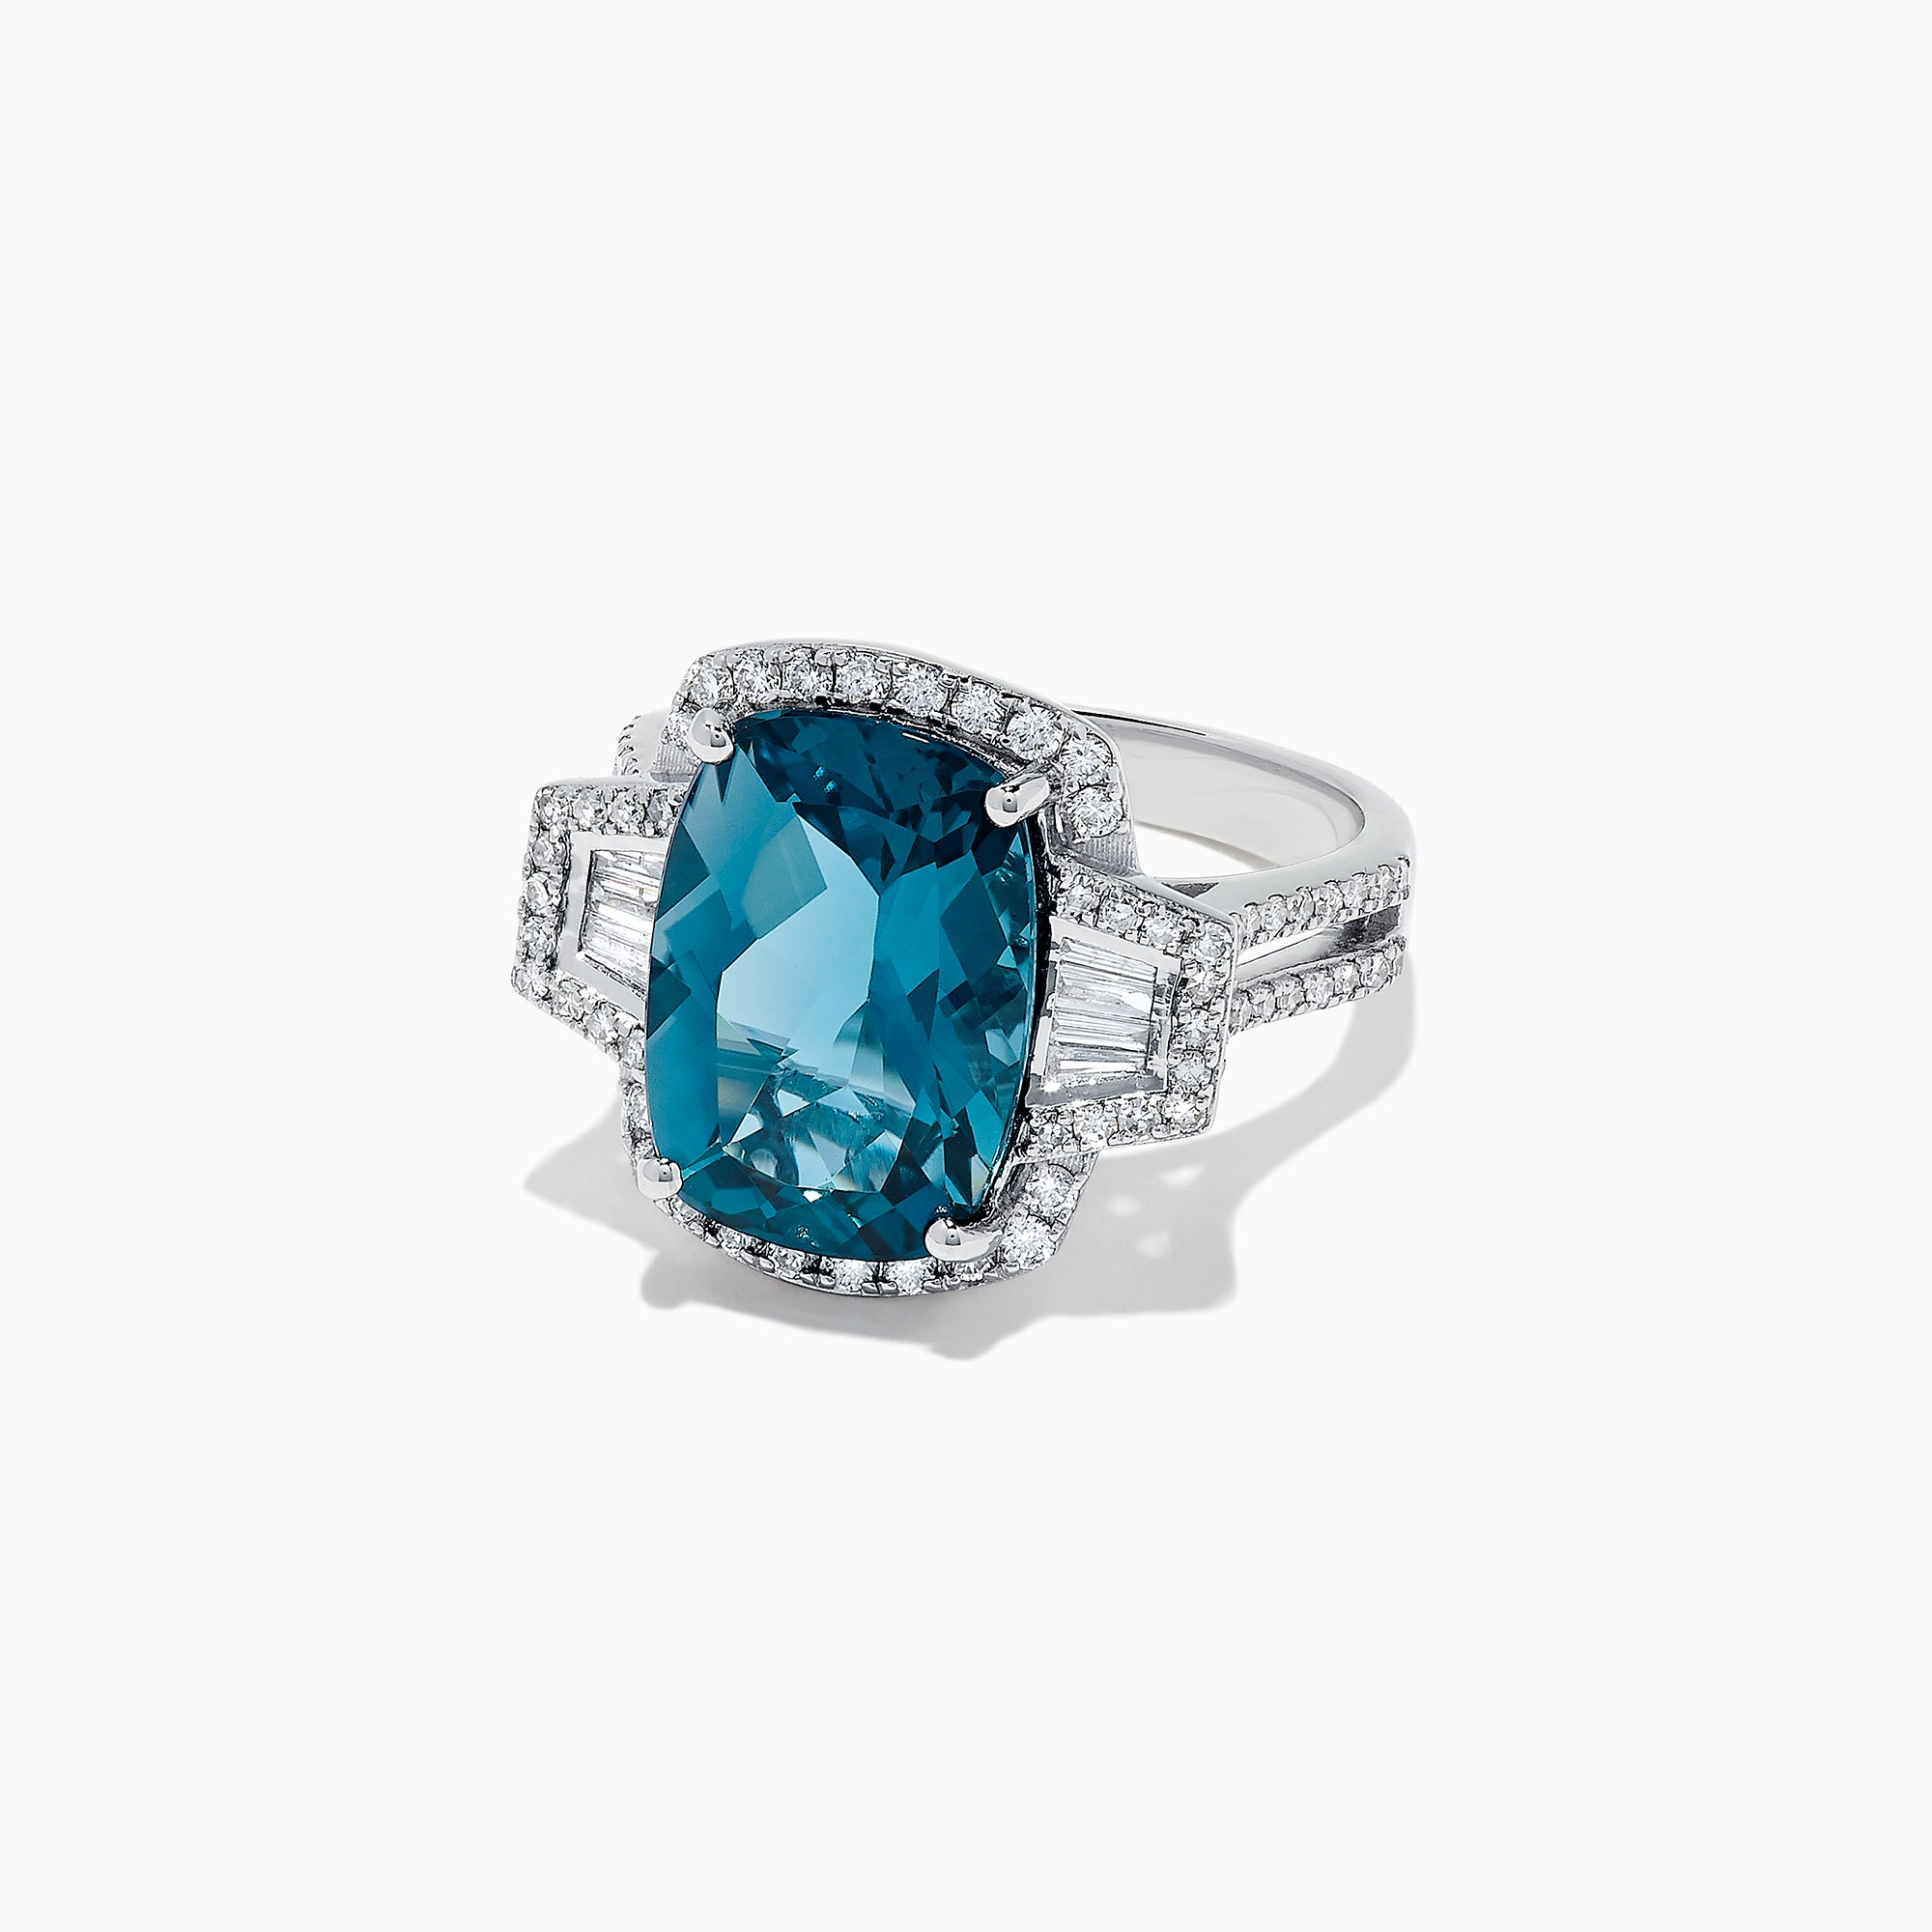 Effy Ocean Bleu 14K White Gold London Topaz & Diamond Ring, 9.33 TCW